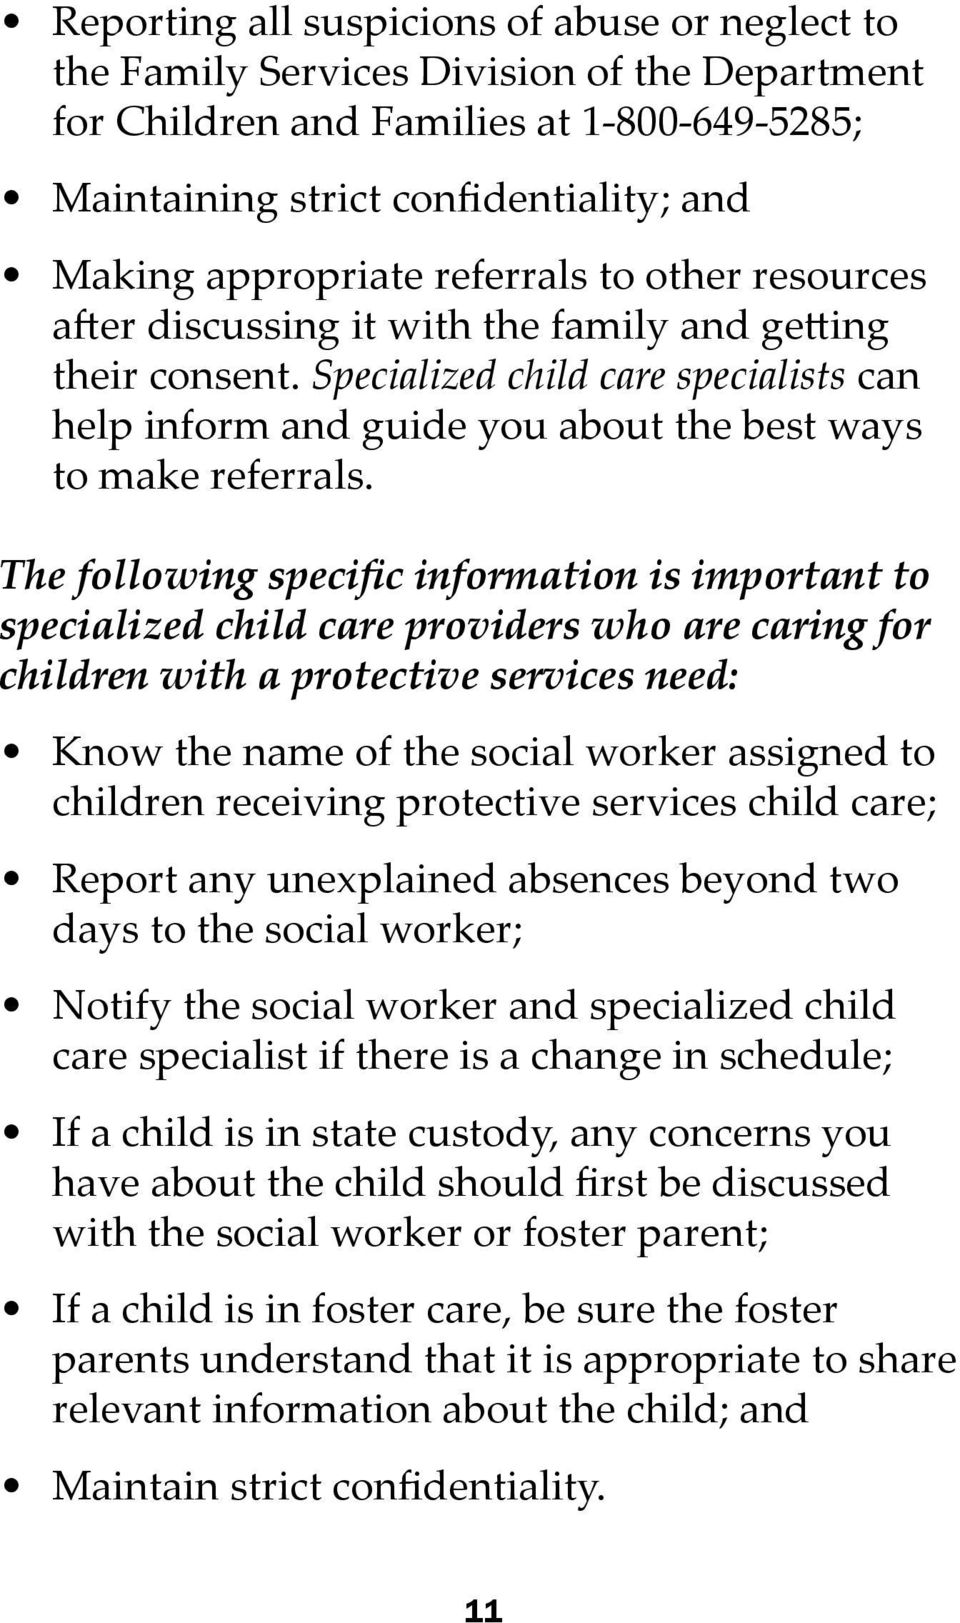 The following specific information is important to specialized child care providers who are caring for children with a protective services need: Know the name of the social worker assigned to